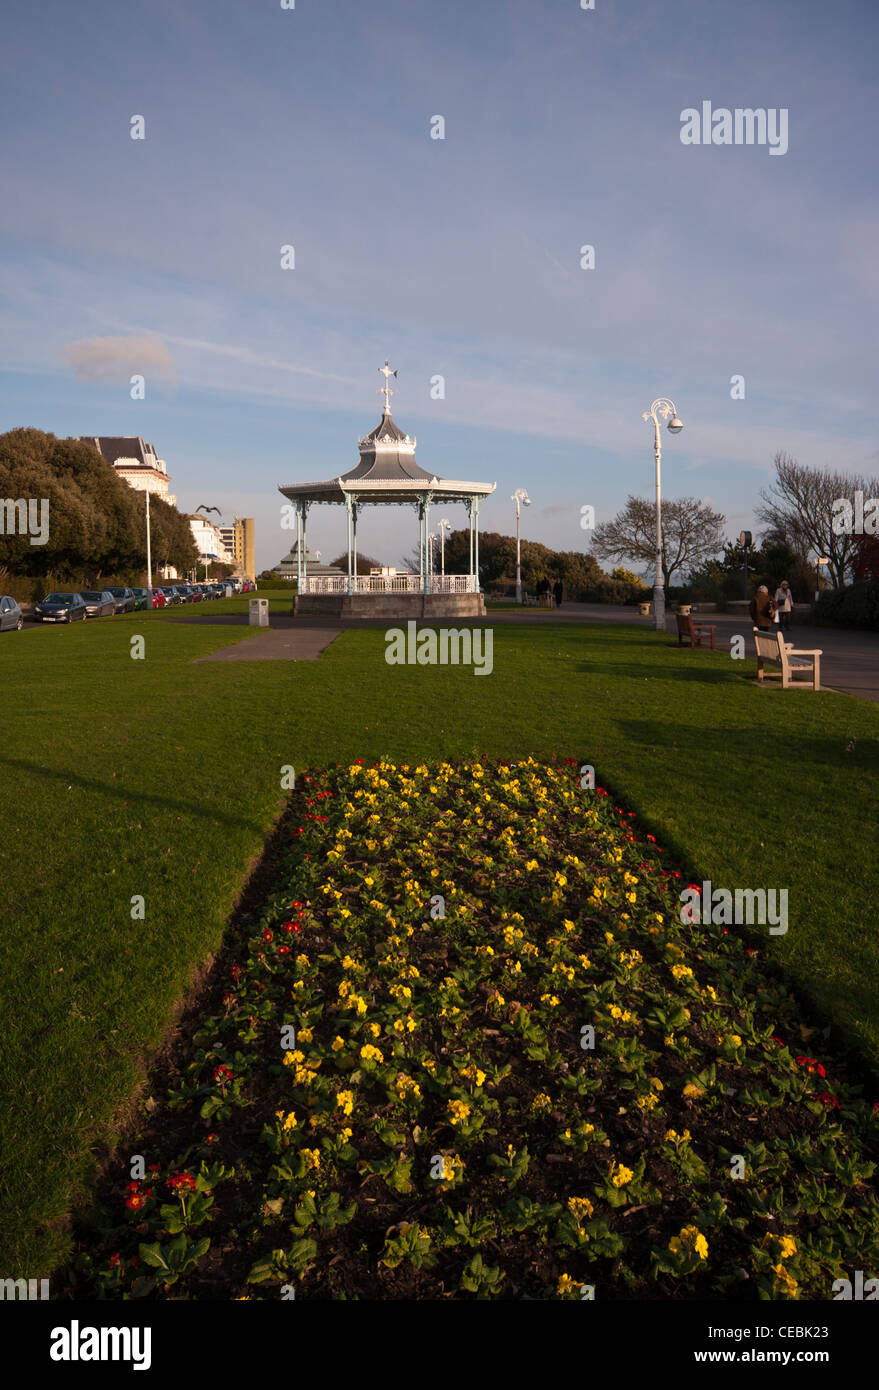 The Bandstand On The Promenade The Leas Folkestone Kent UK With A Spring Flower Bed Beds - Stock Image